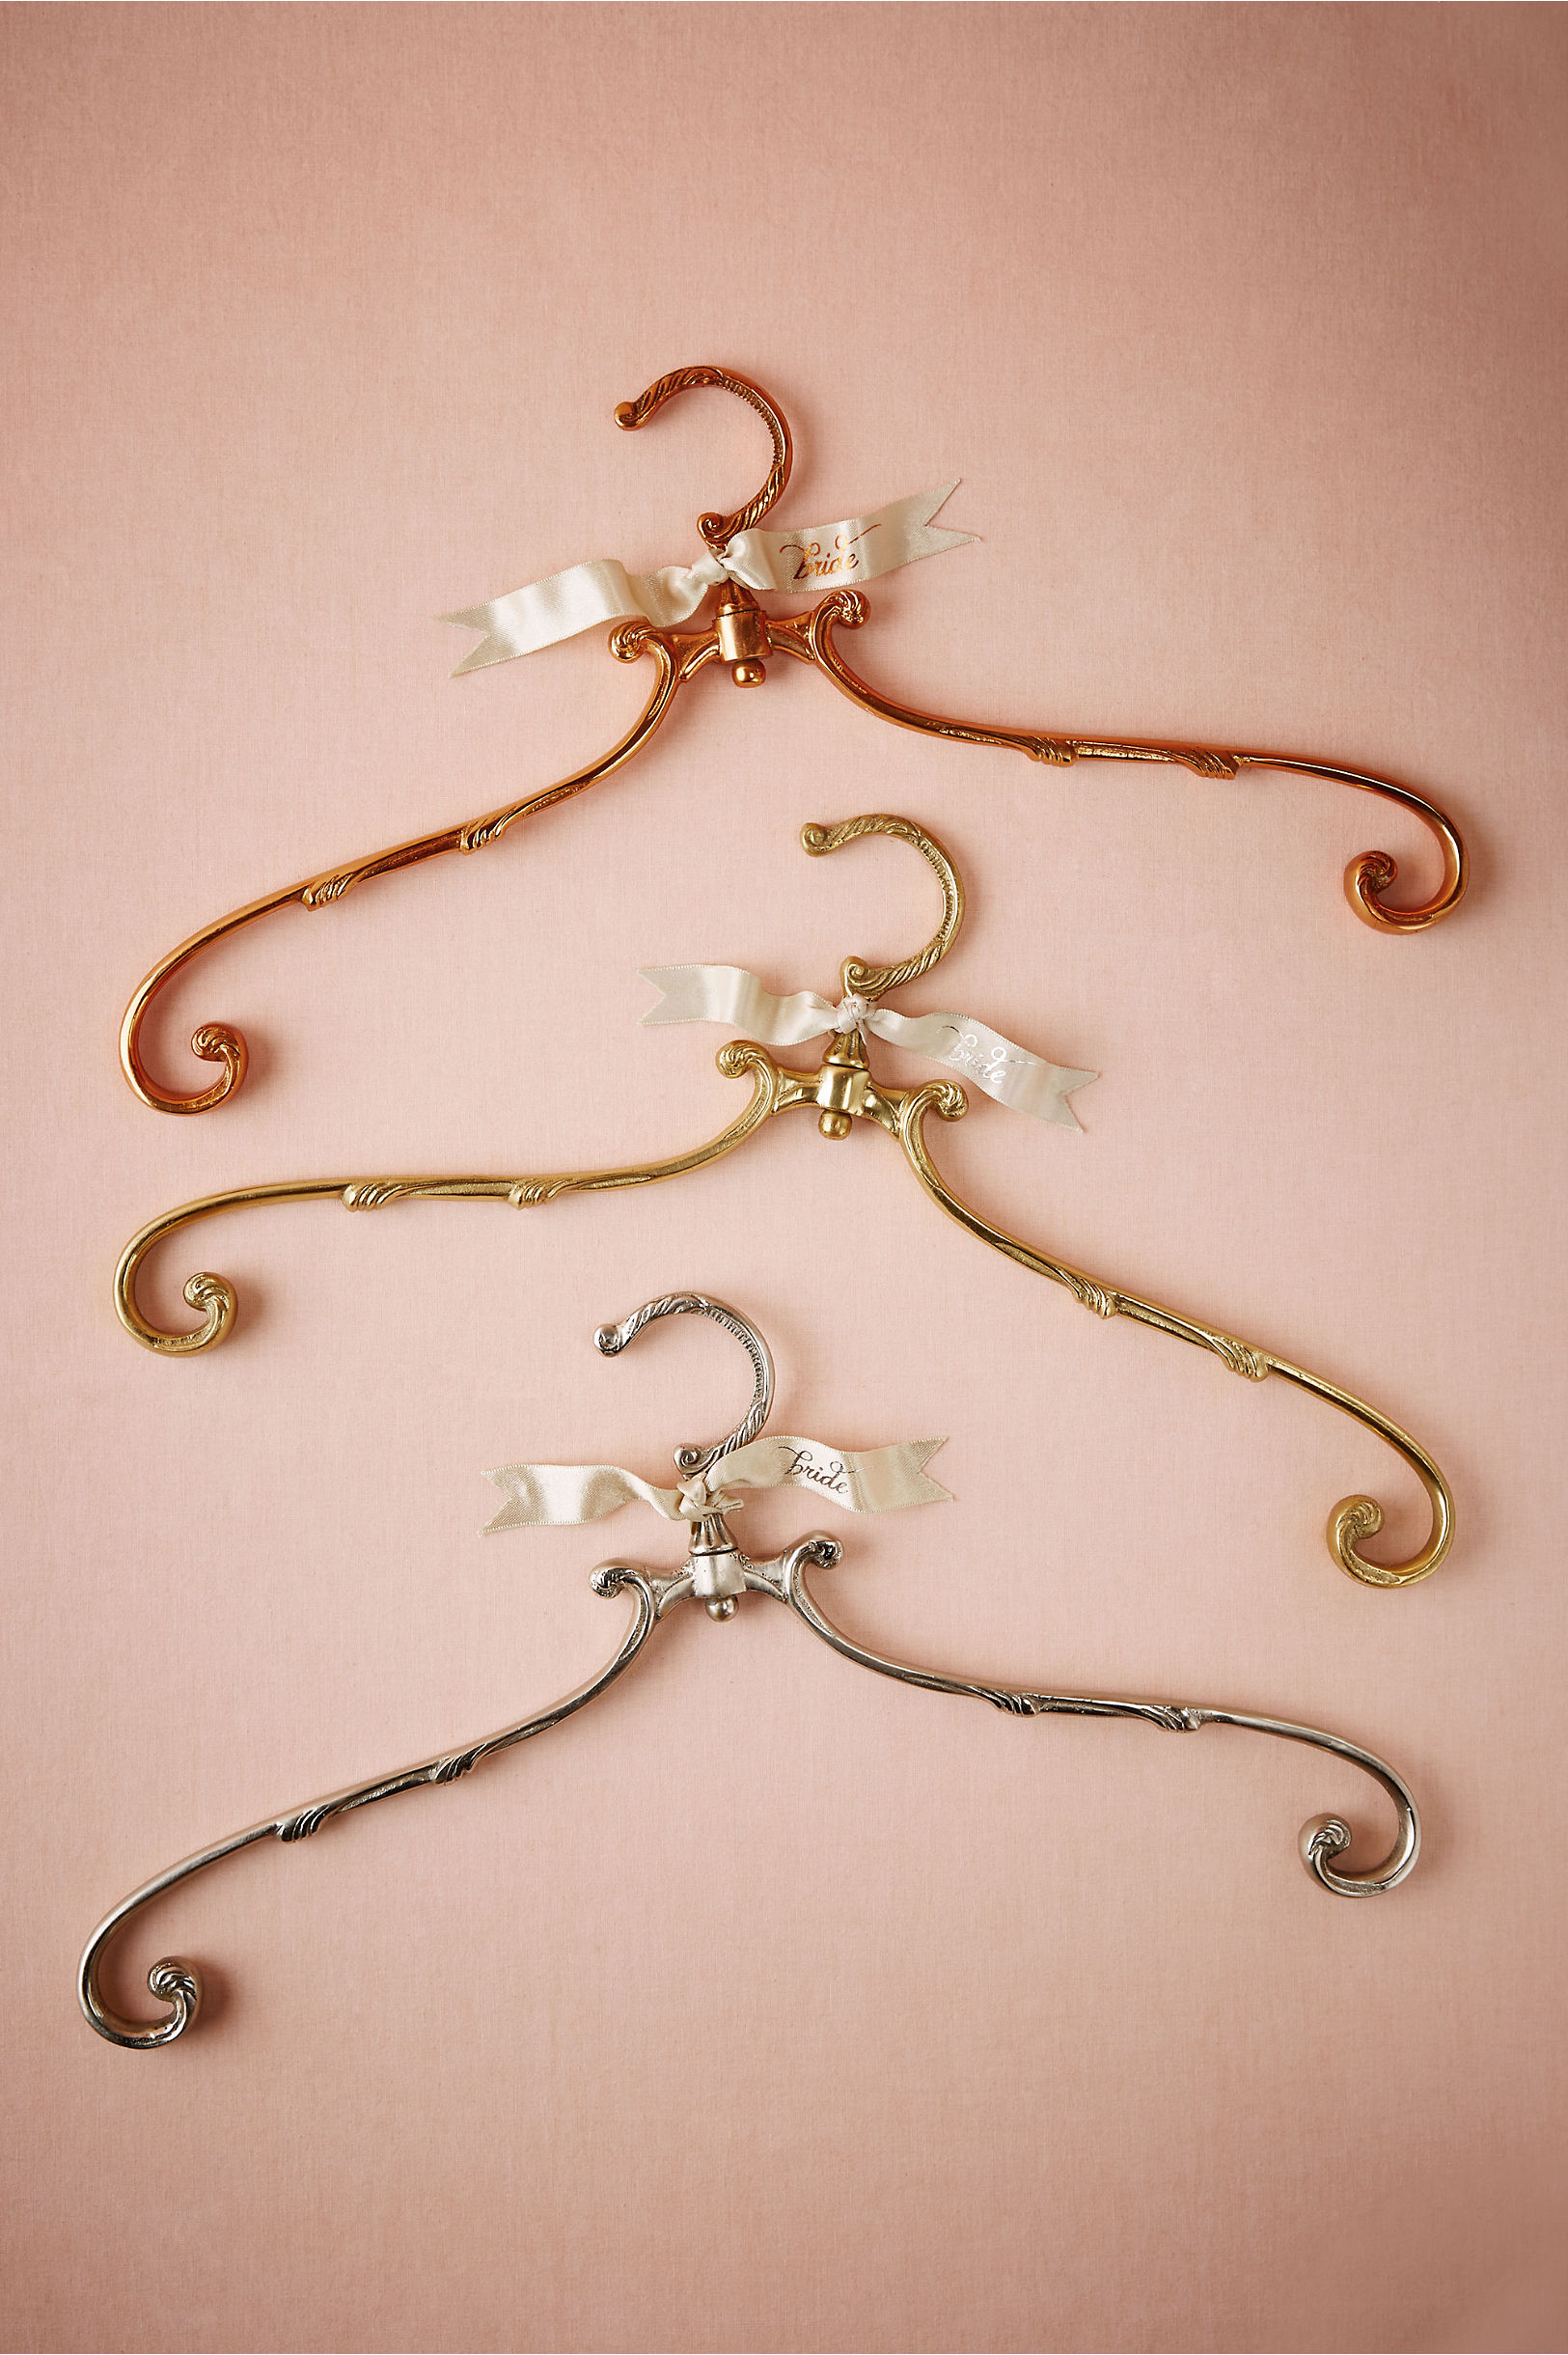 and wall wrought also l decorative hooks interior home hangers cool t picture hanger f your unique anthropolo m make for over coat decoration coats iron decor to